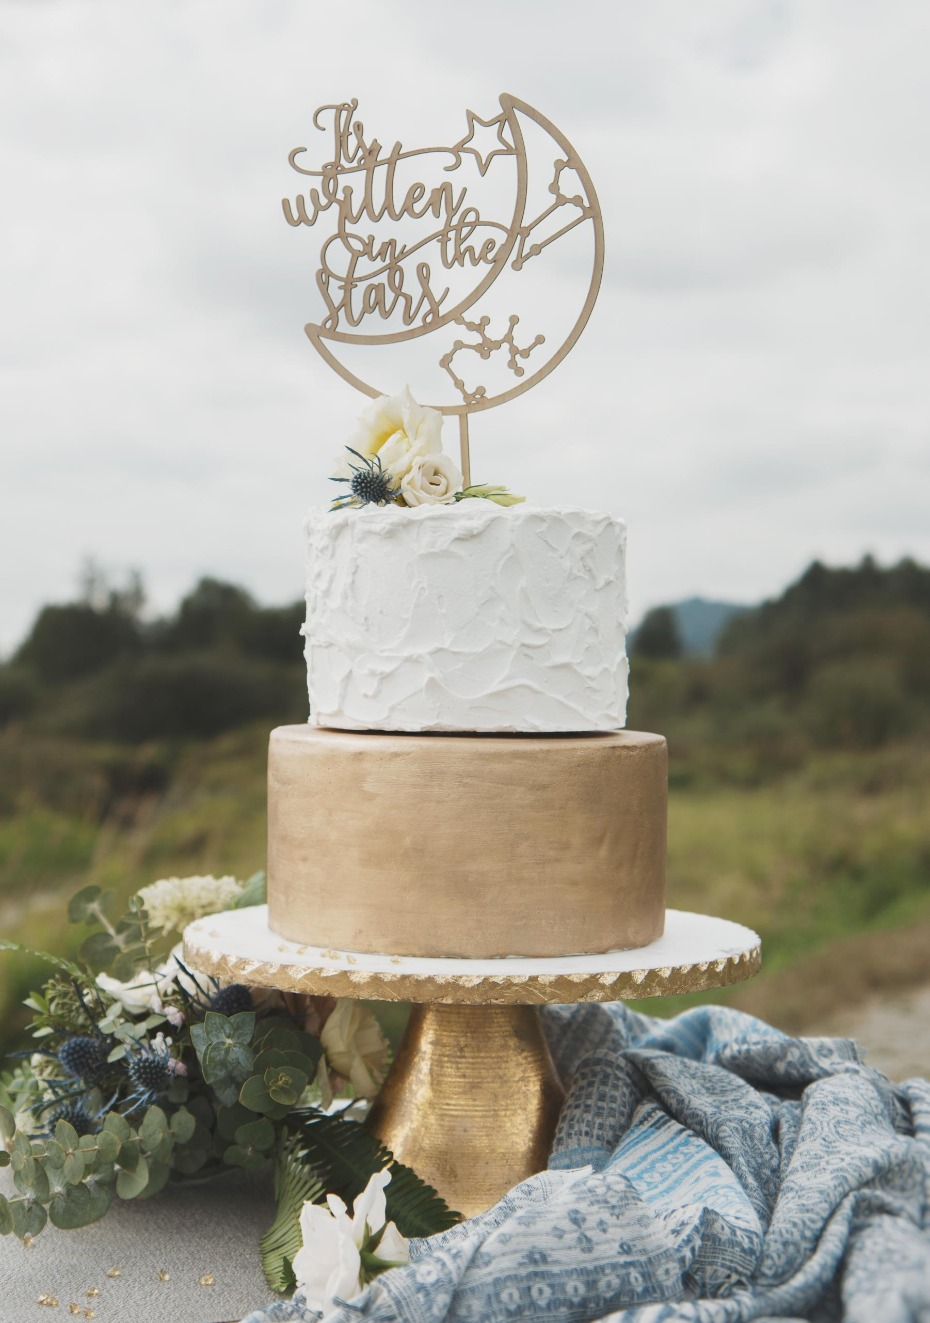 Thistle and Lace Custom It's Written in the Stars Cake Topper